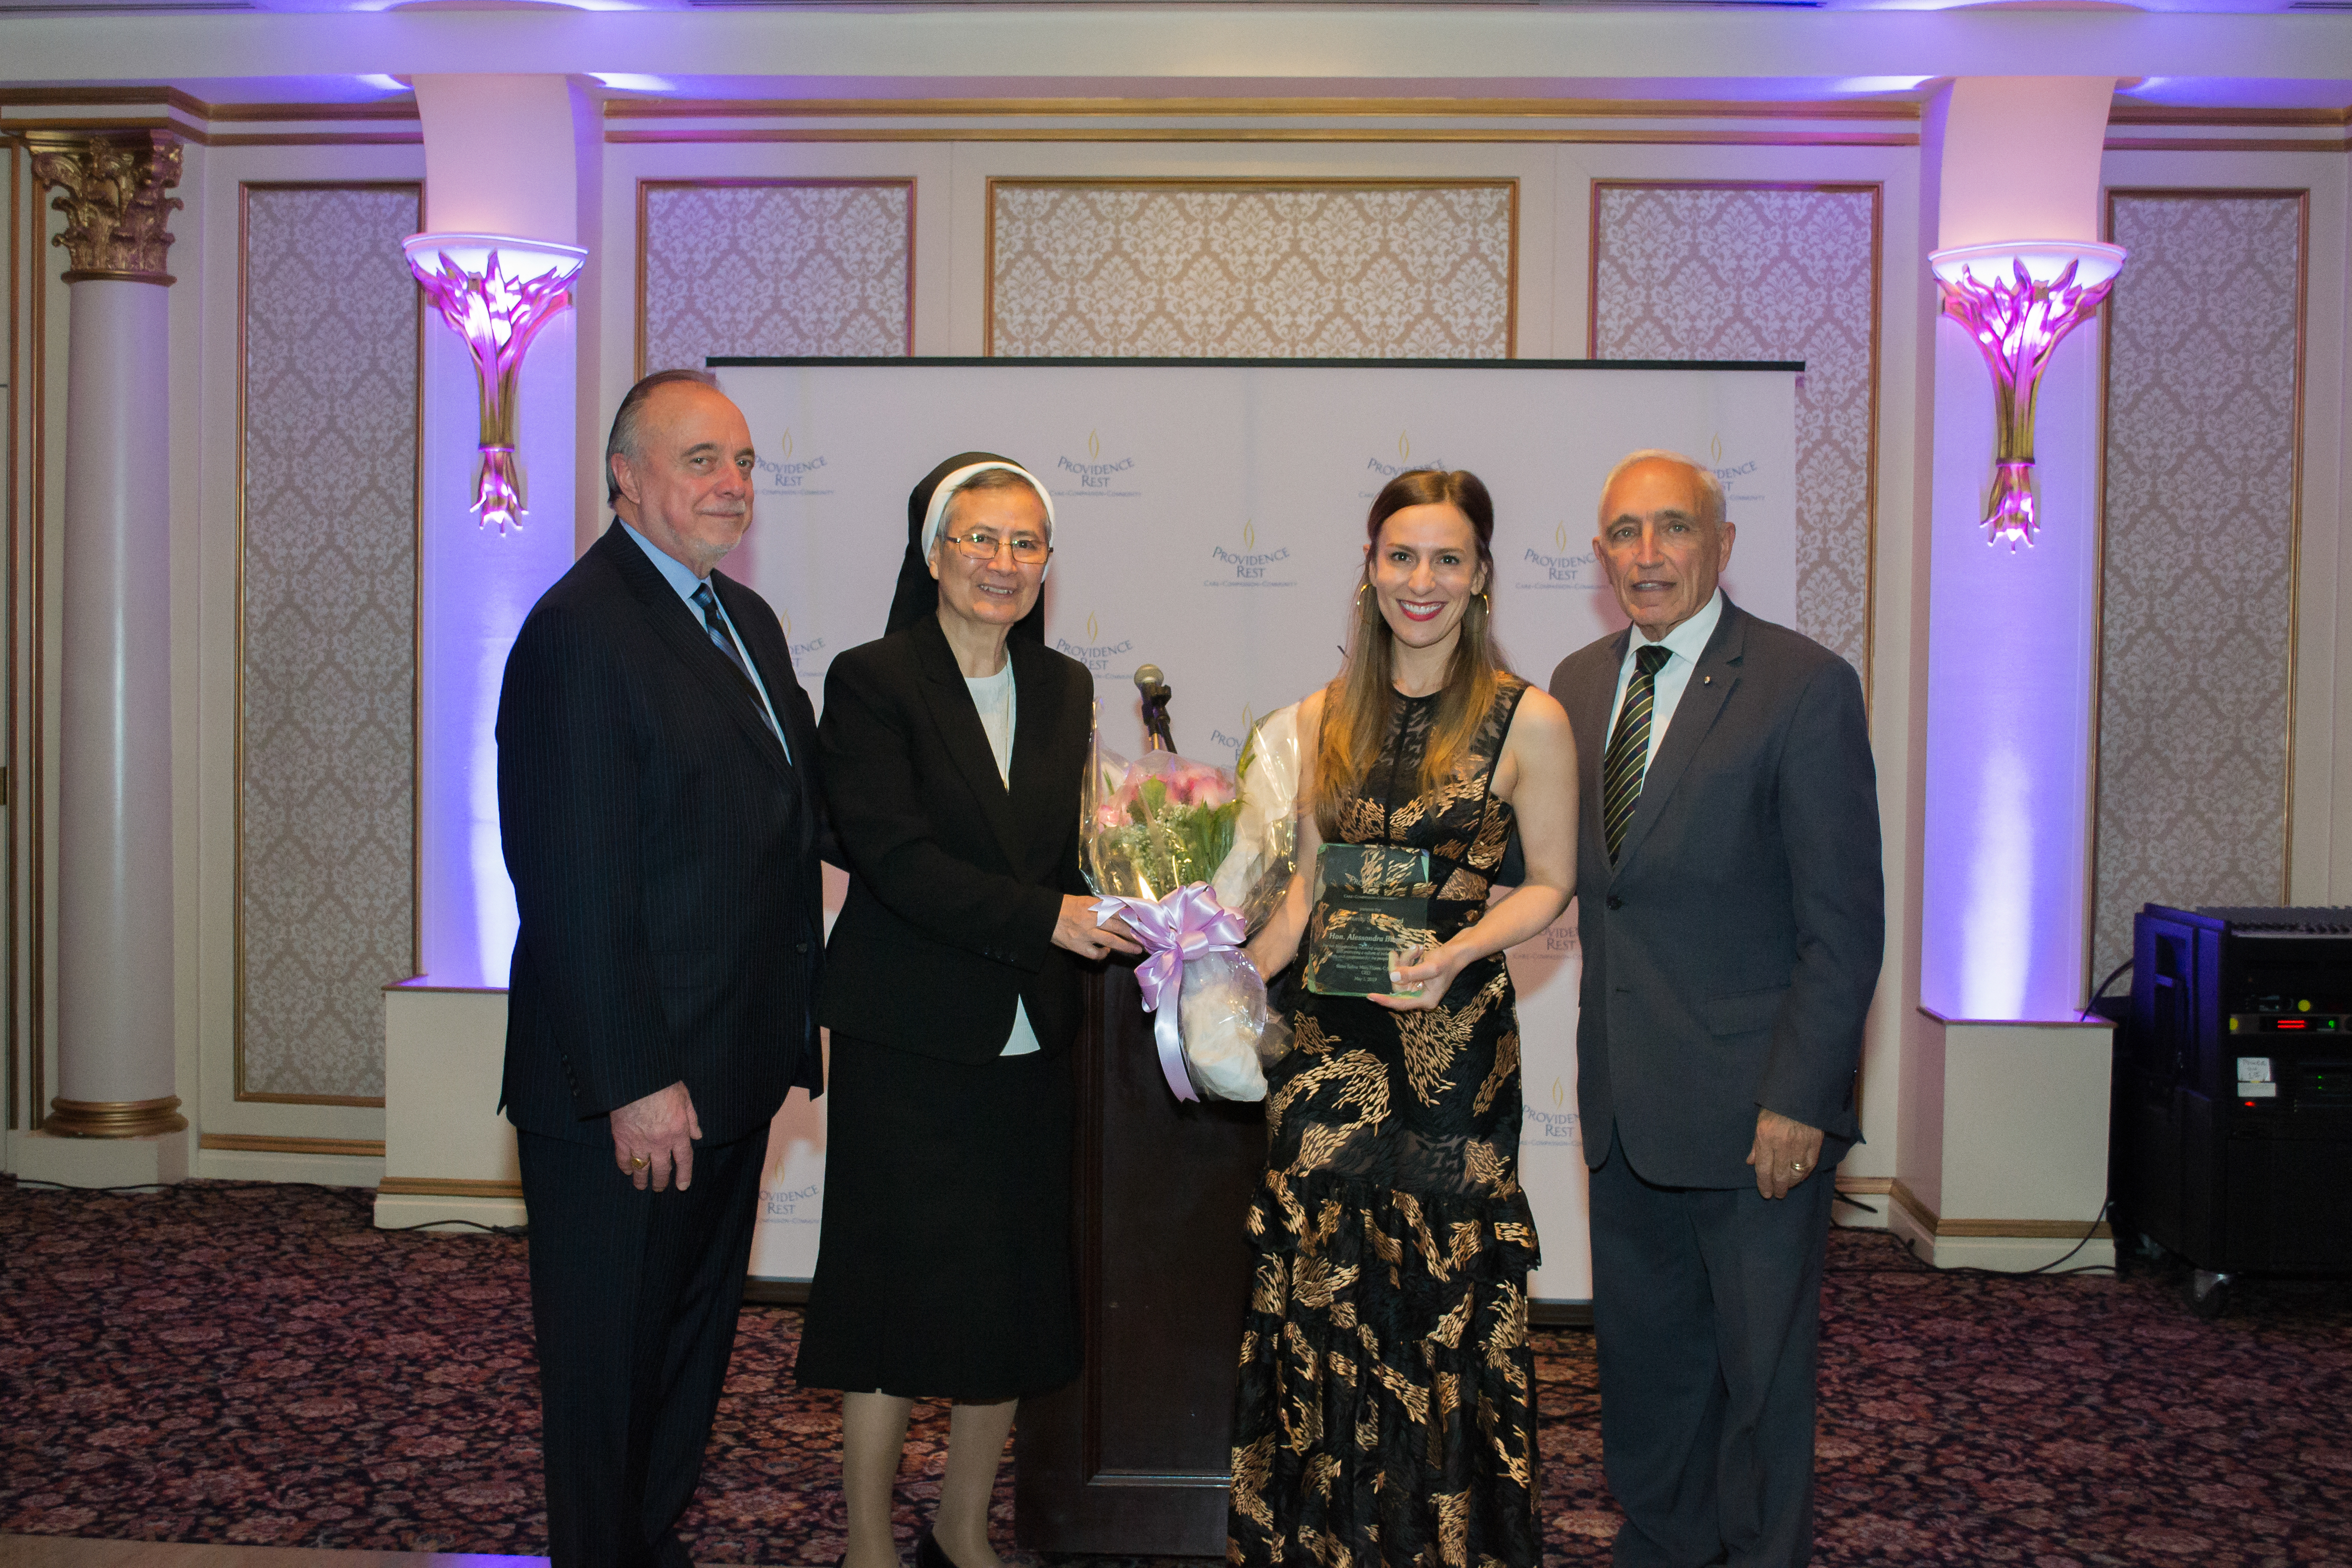 Sister Seline Mary Flores with Honoree, Alessandra Biaggi, and two male participants at the 2019 Spring Gala.